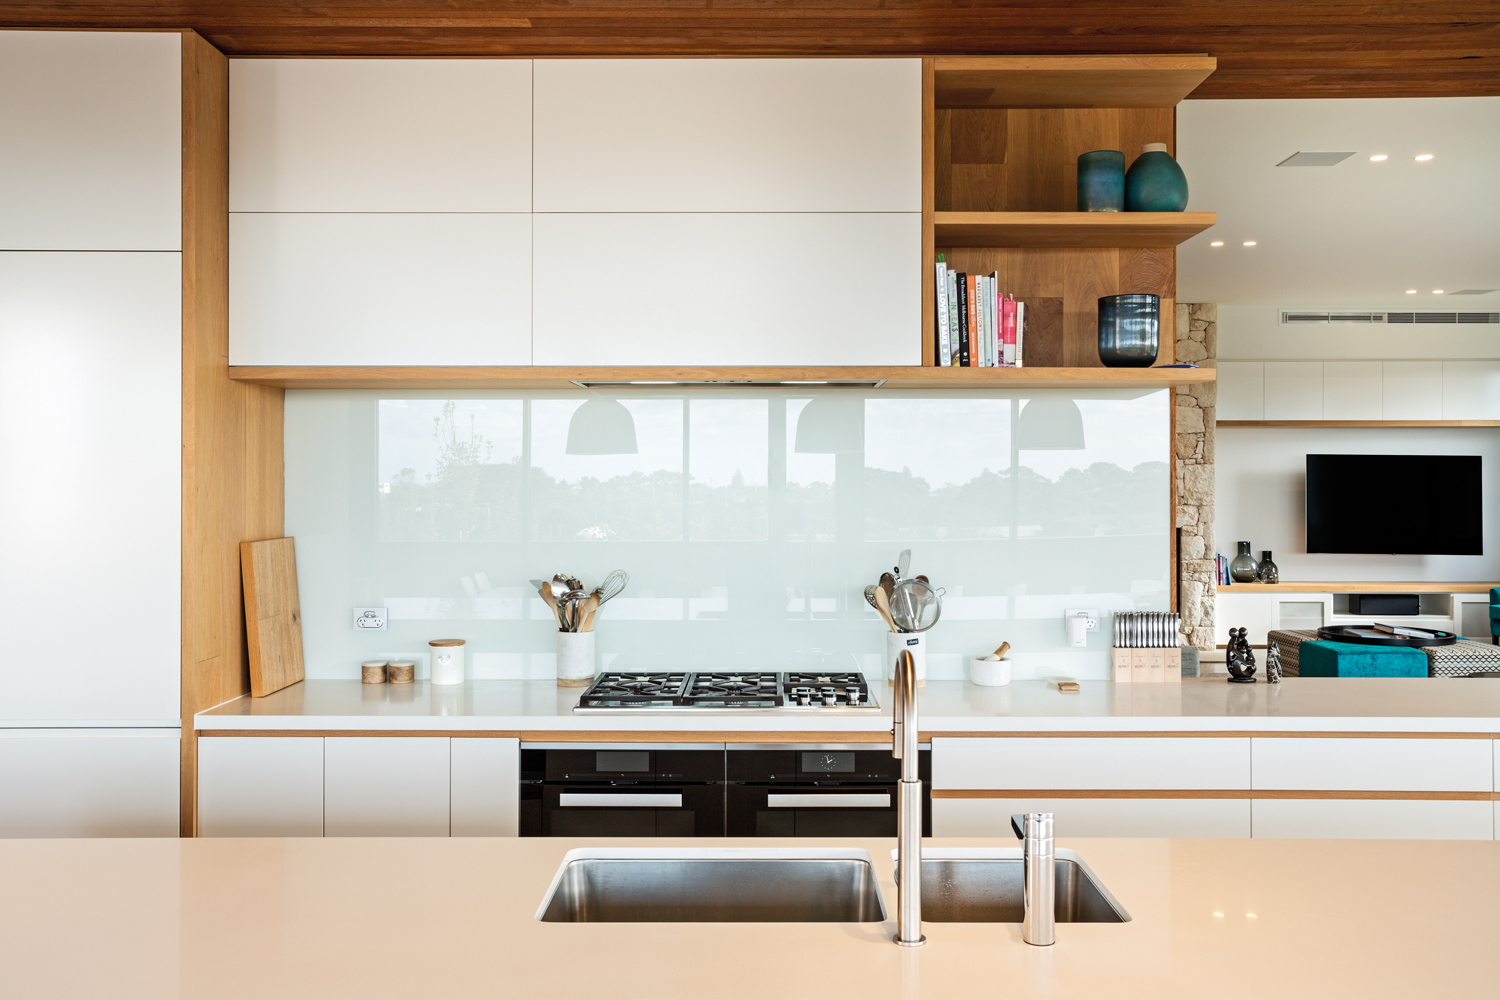 This Modern Minimalist Kitchen Blends Natural Light With